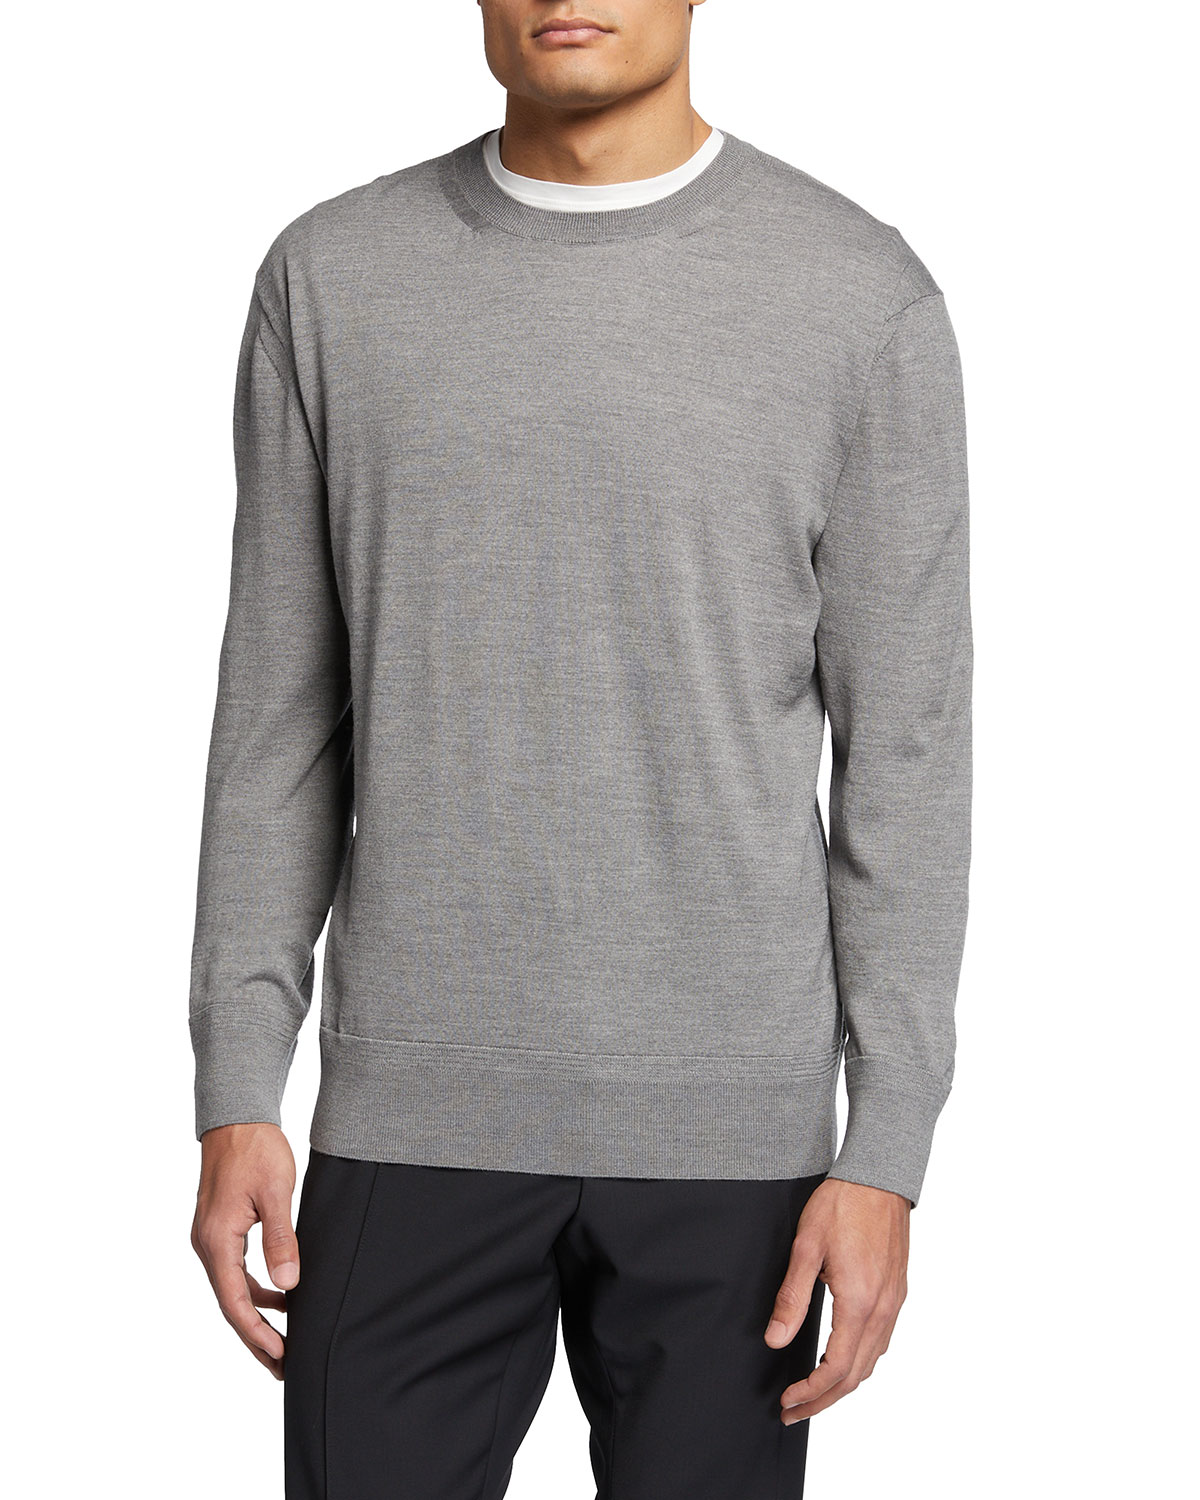 Tom Ford MEN'S SOLID JERSEY STITCH SWEATER